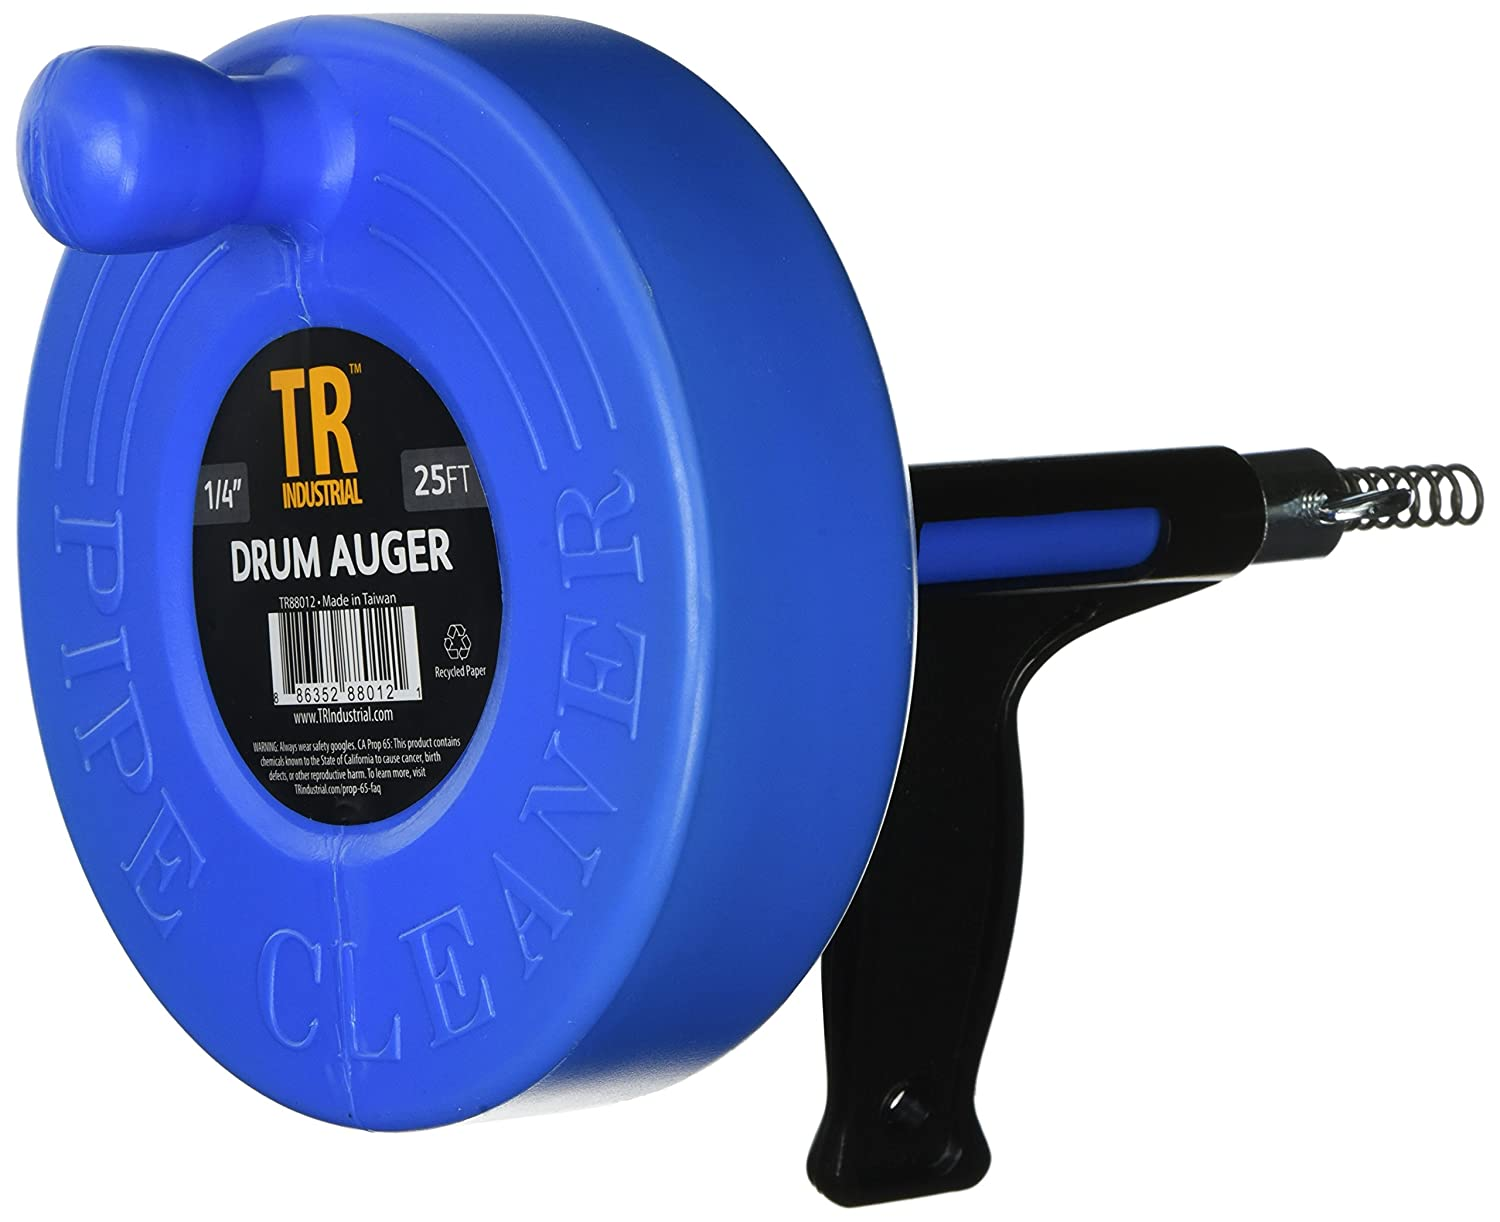 TR Industrial 8012 Drum Auger for Plumbing with 1/4 x 25' Spring Cable Capri Tools